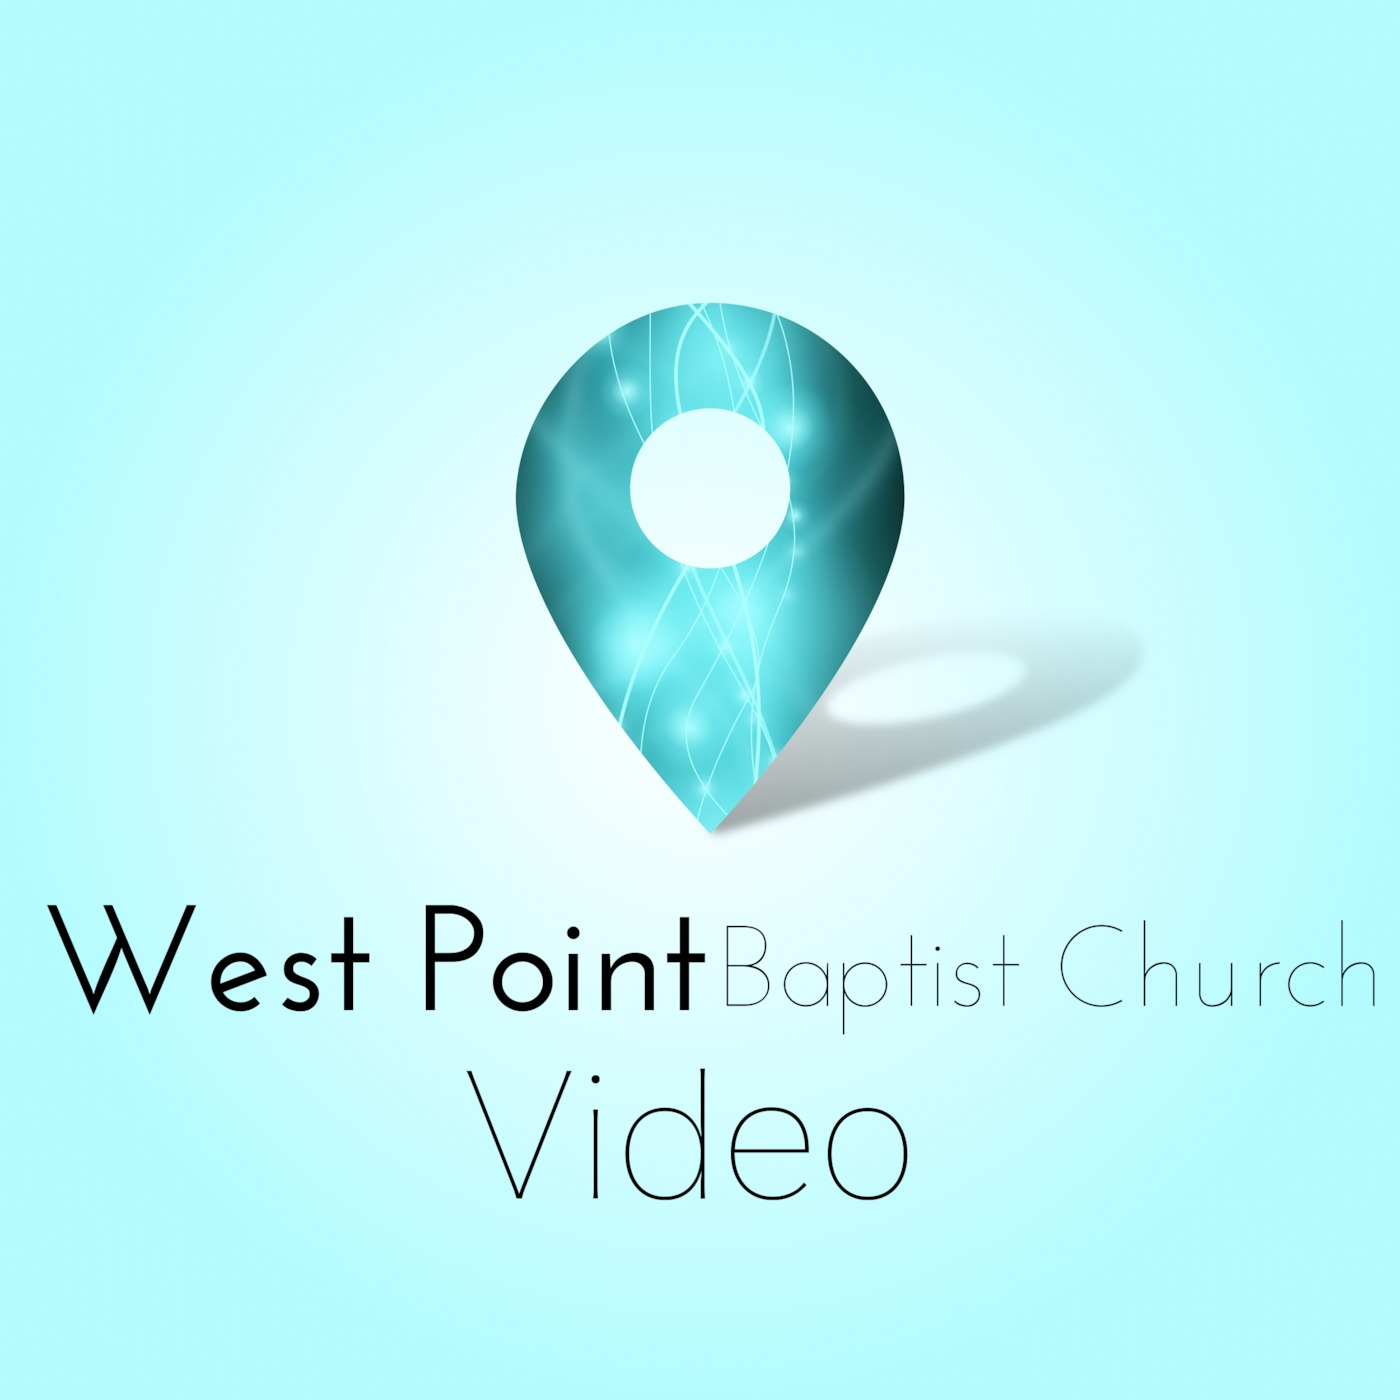 West Point Baptist Church Video Podcast